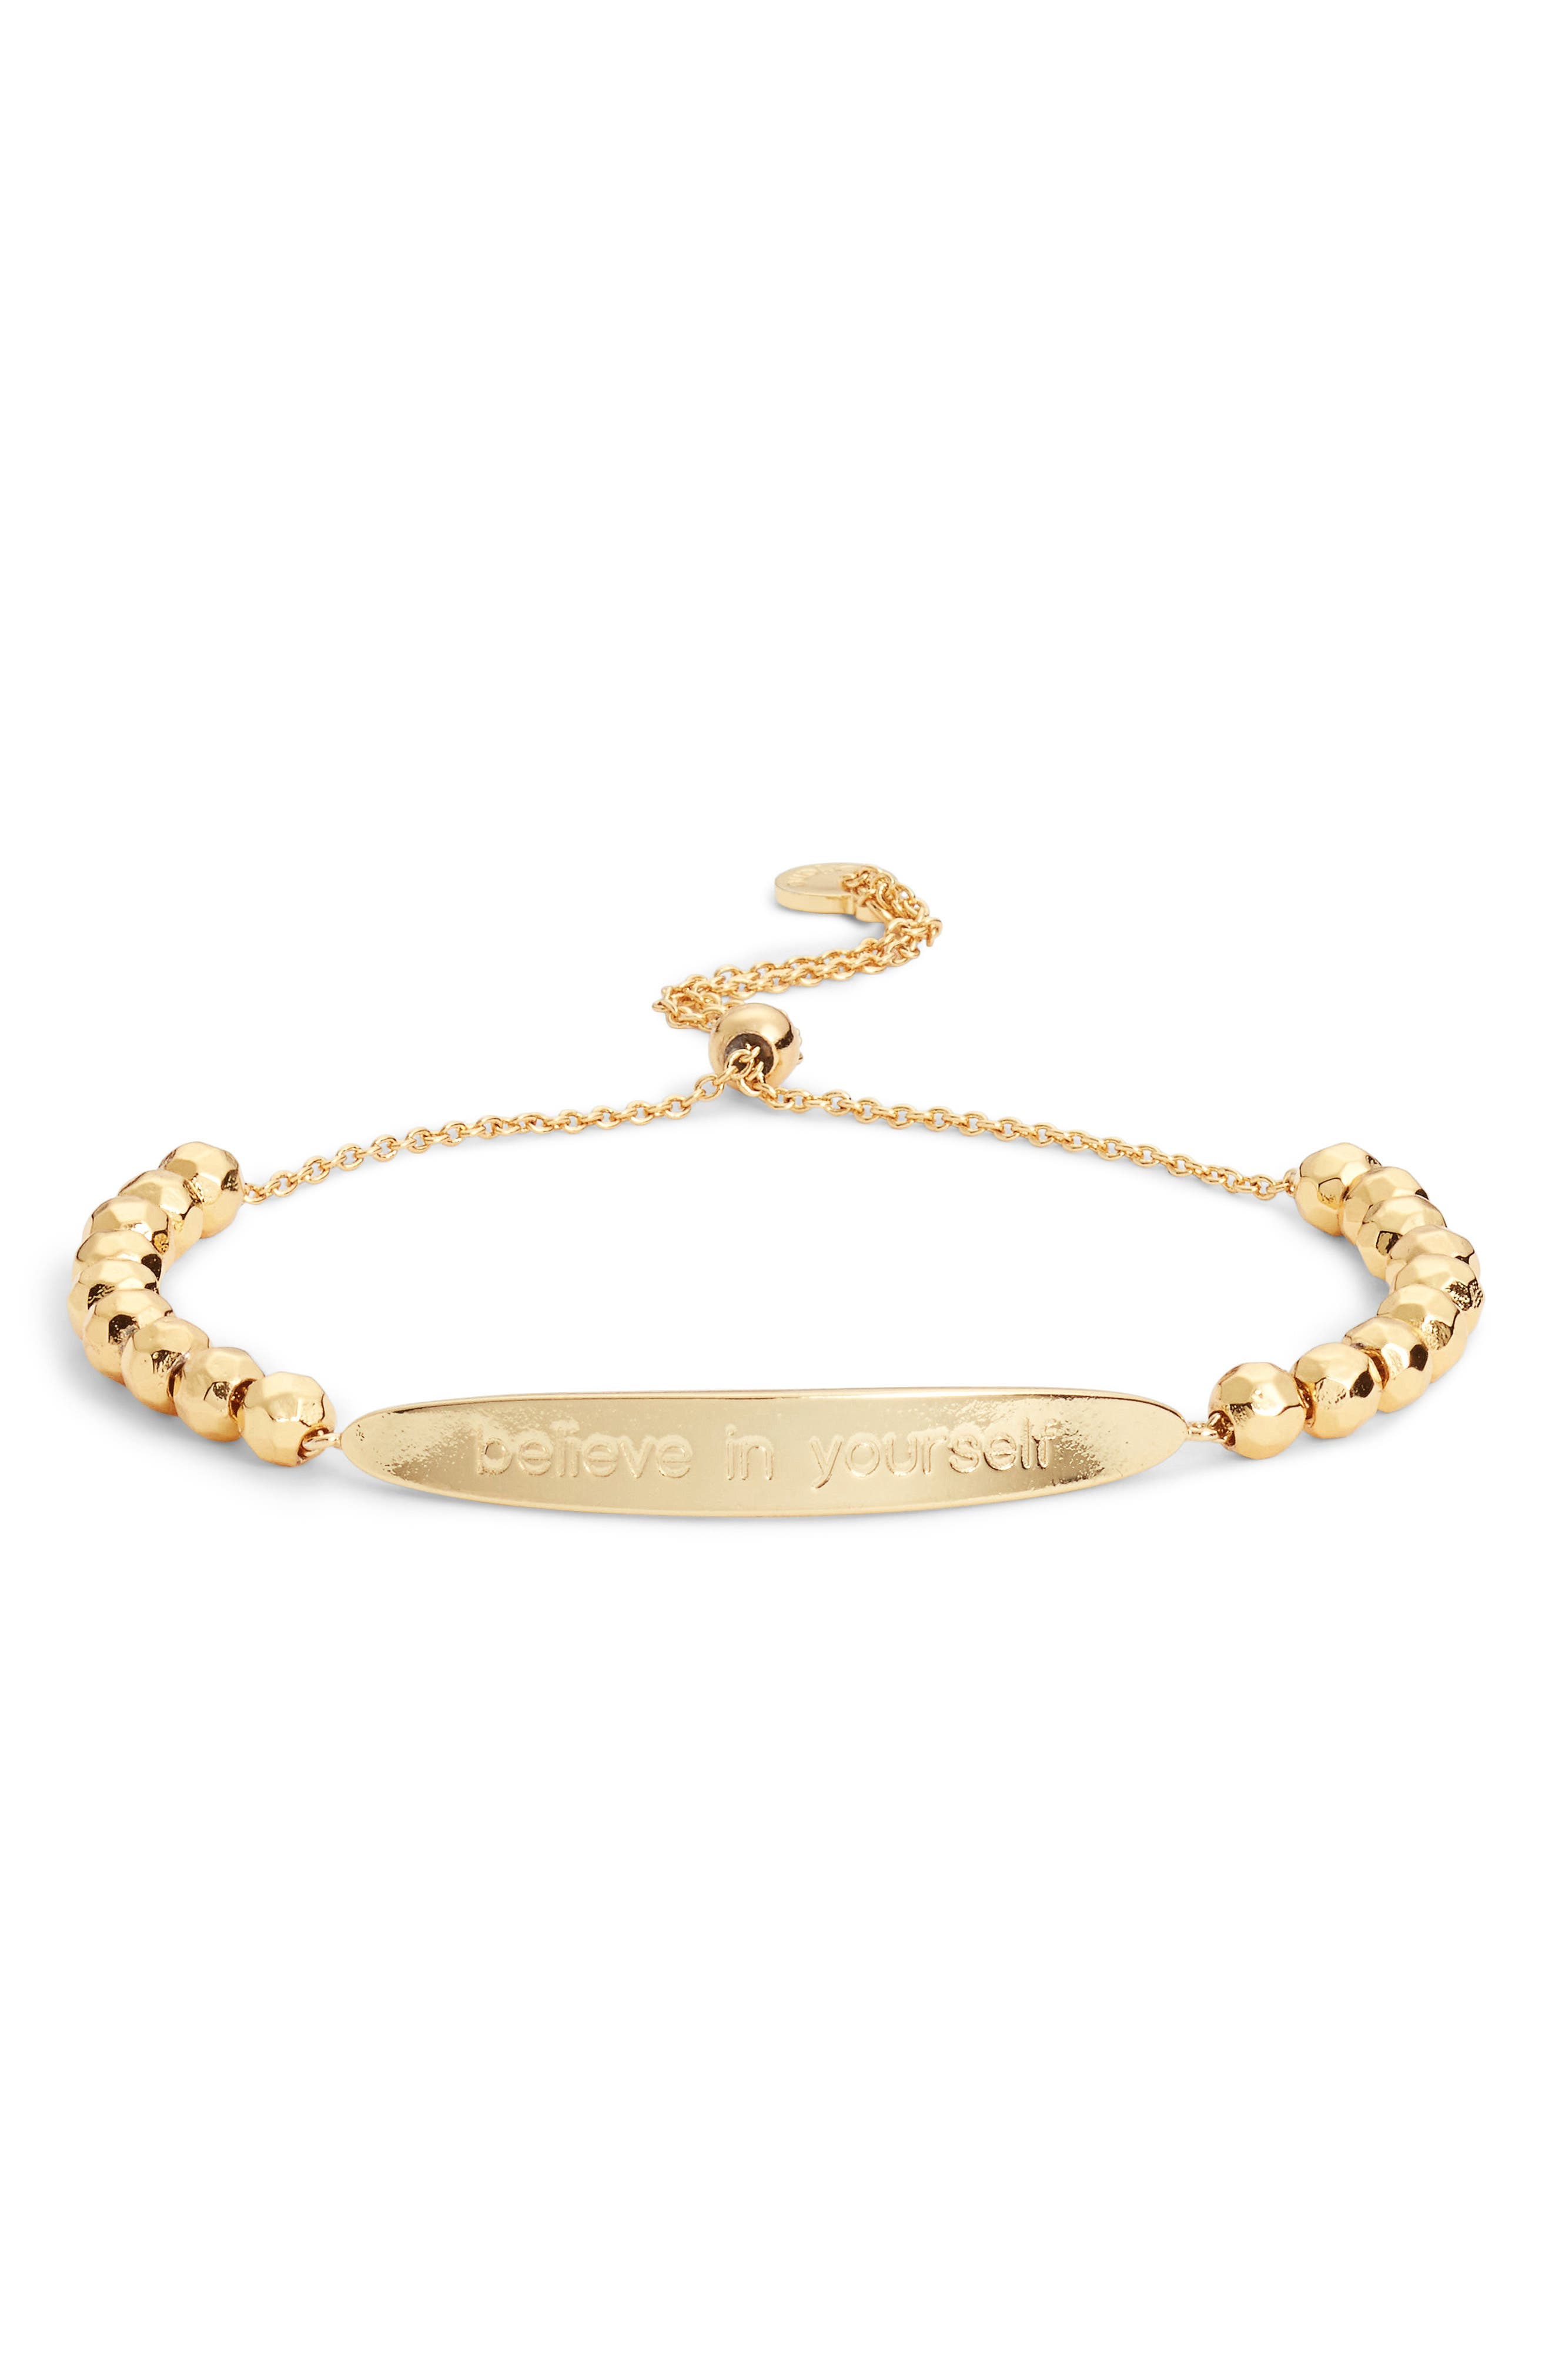 Power Intention Believe in Yourself Bracelet,                             Main thumbnail 2, color,